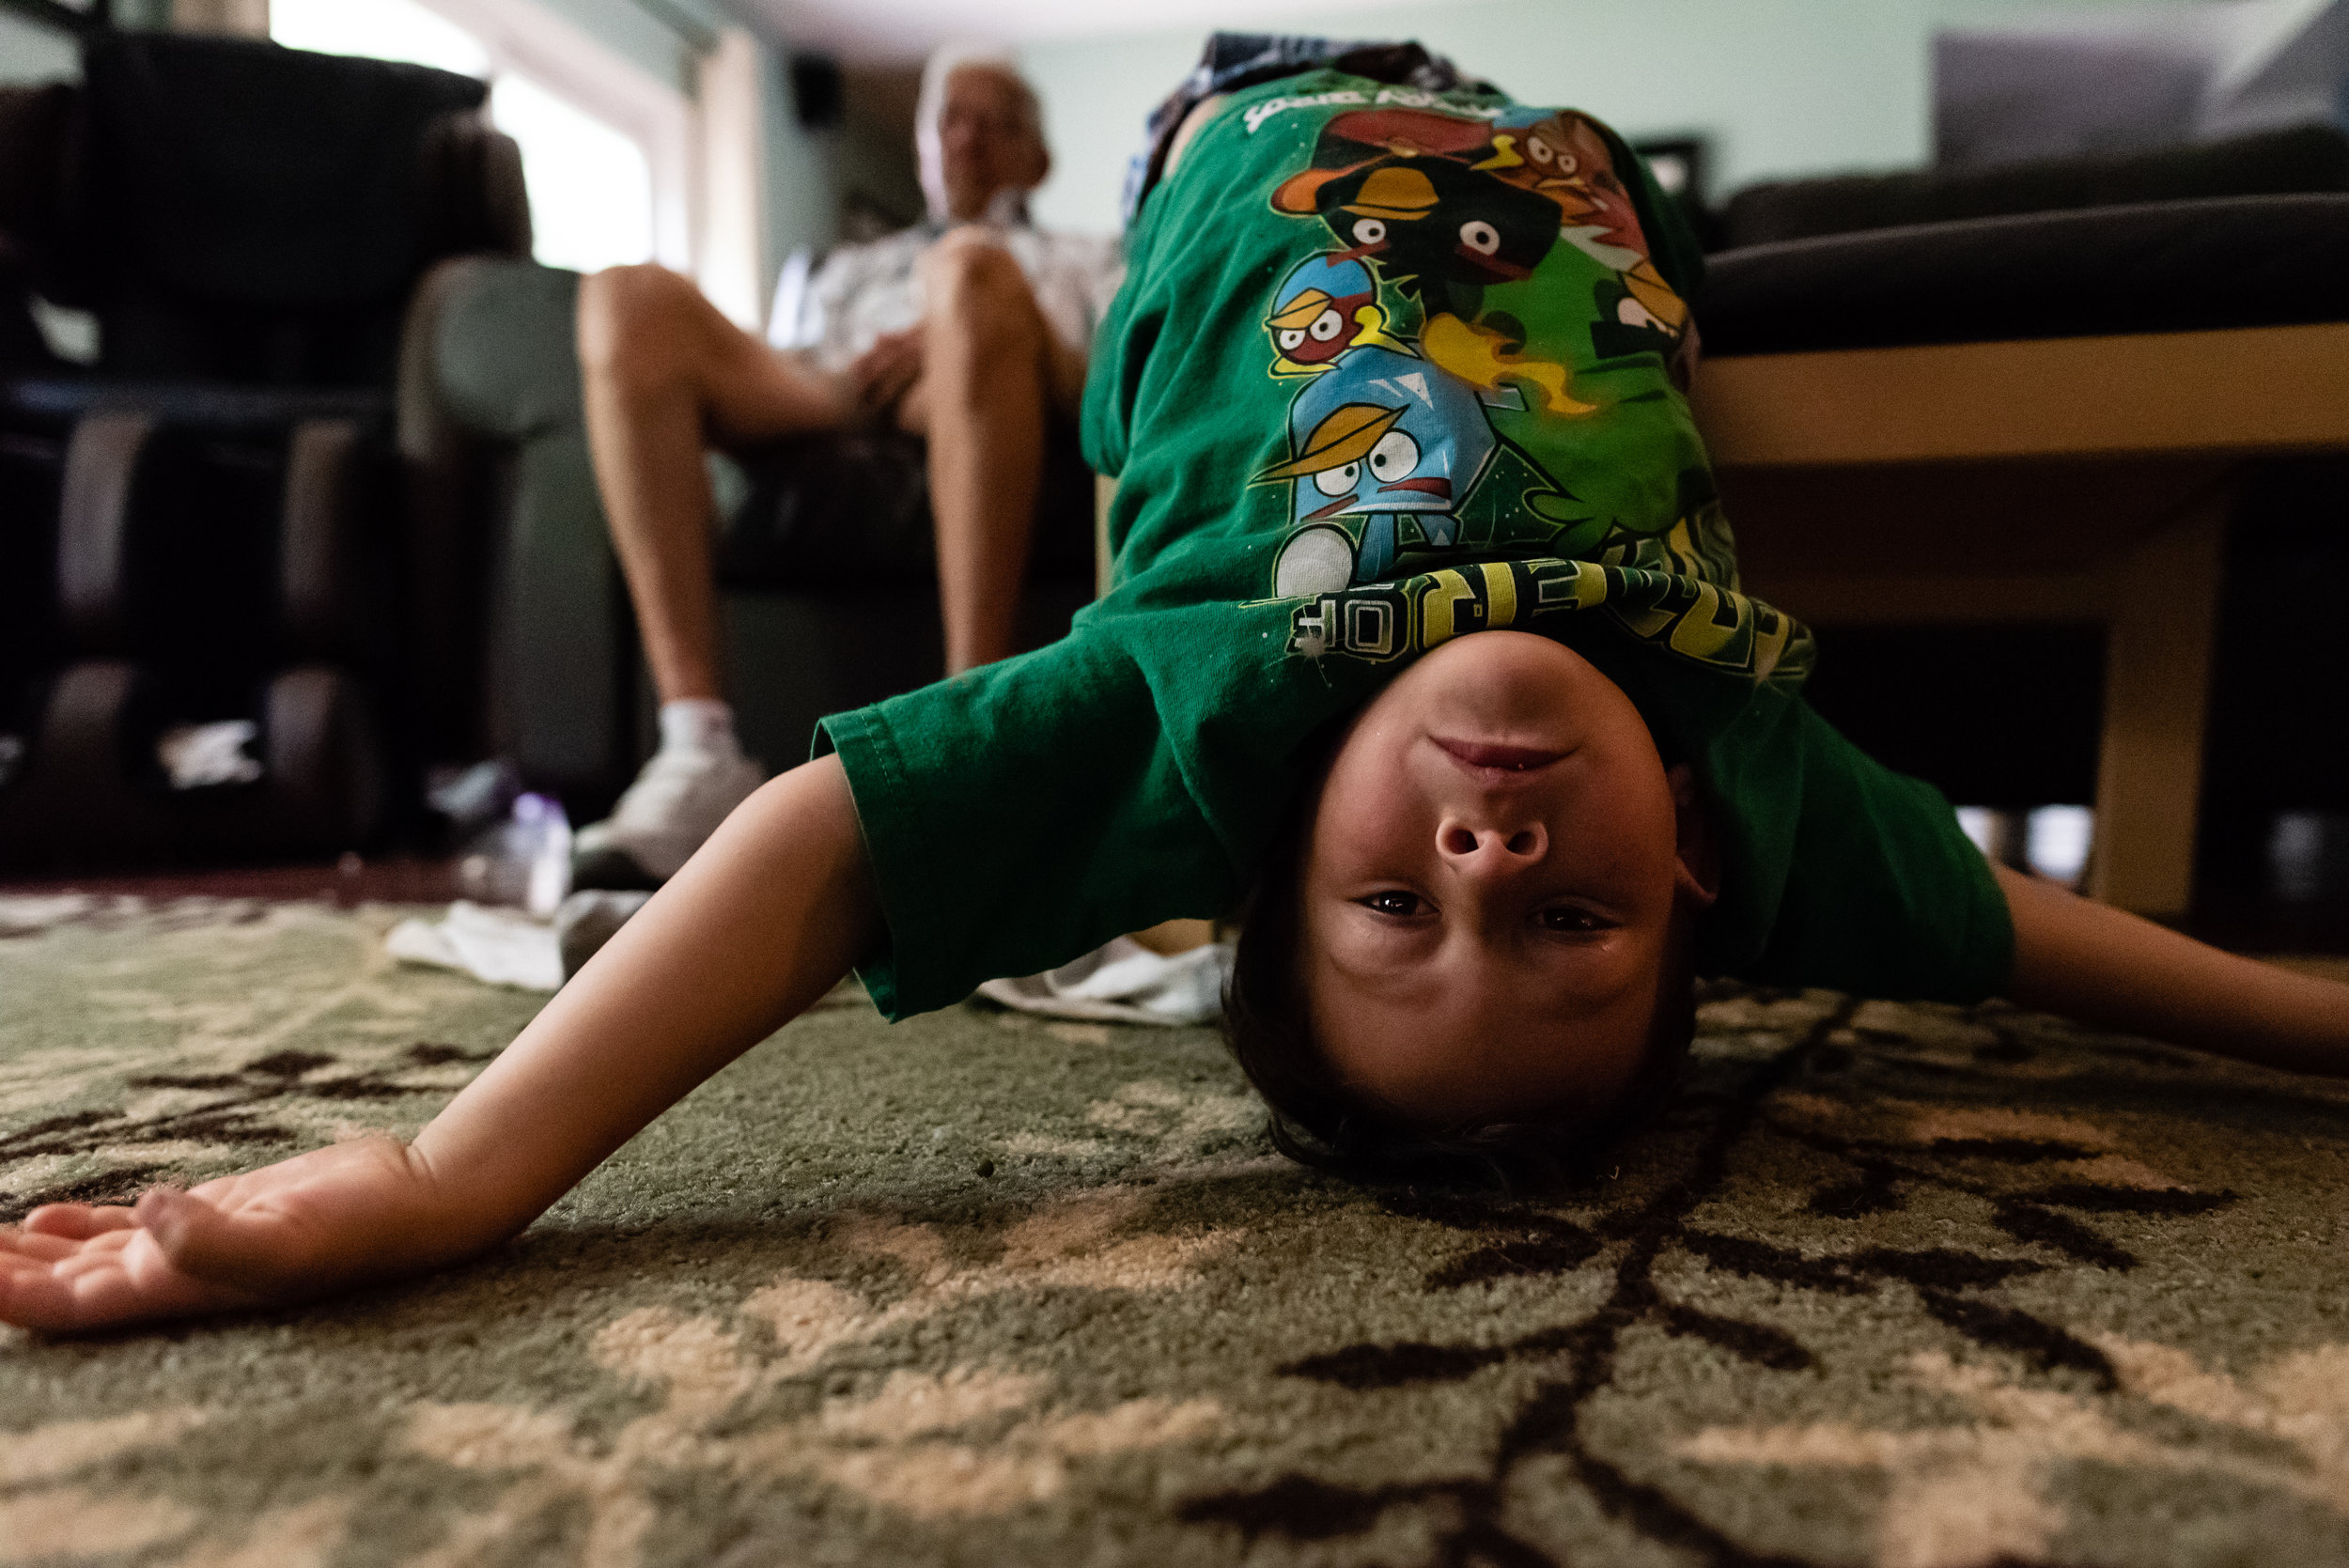 Boy hanging upside down off couch by Northern Virginia Family Photographer Nicole Sanchez